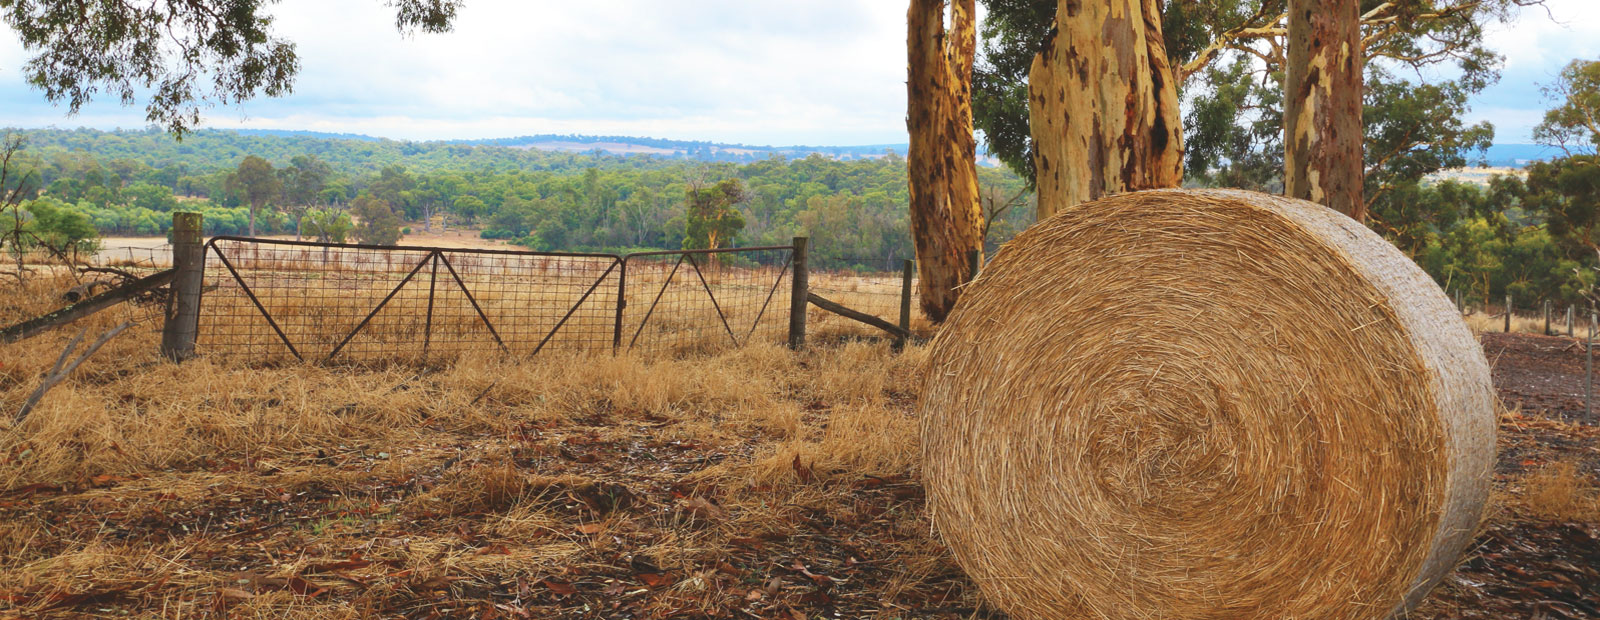 hay bale and field